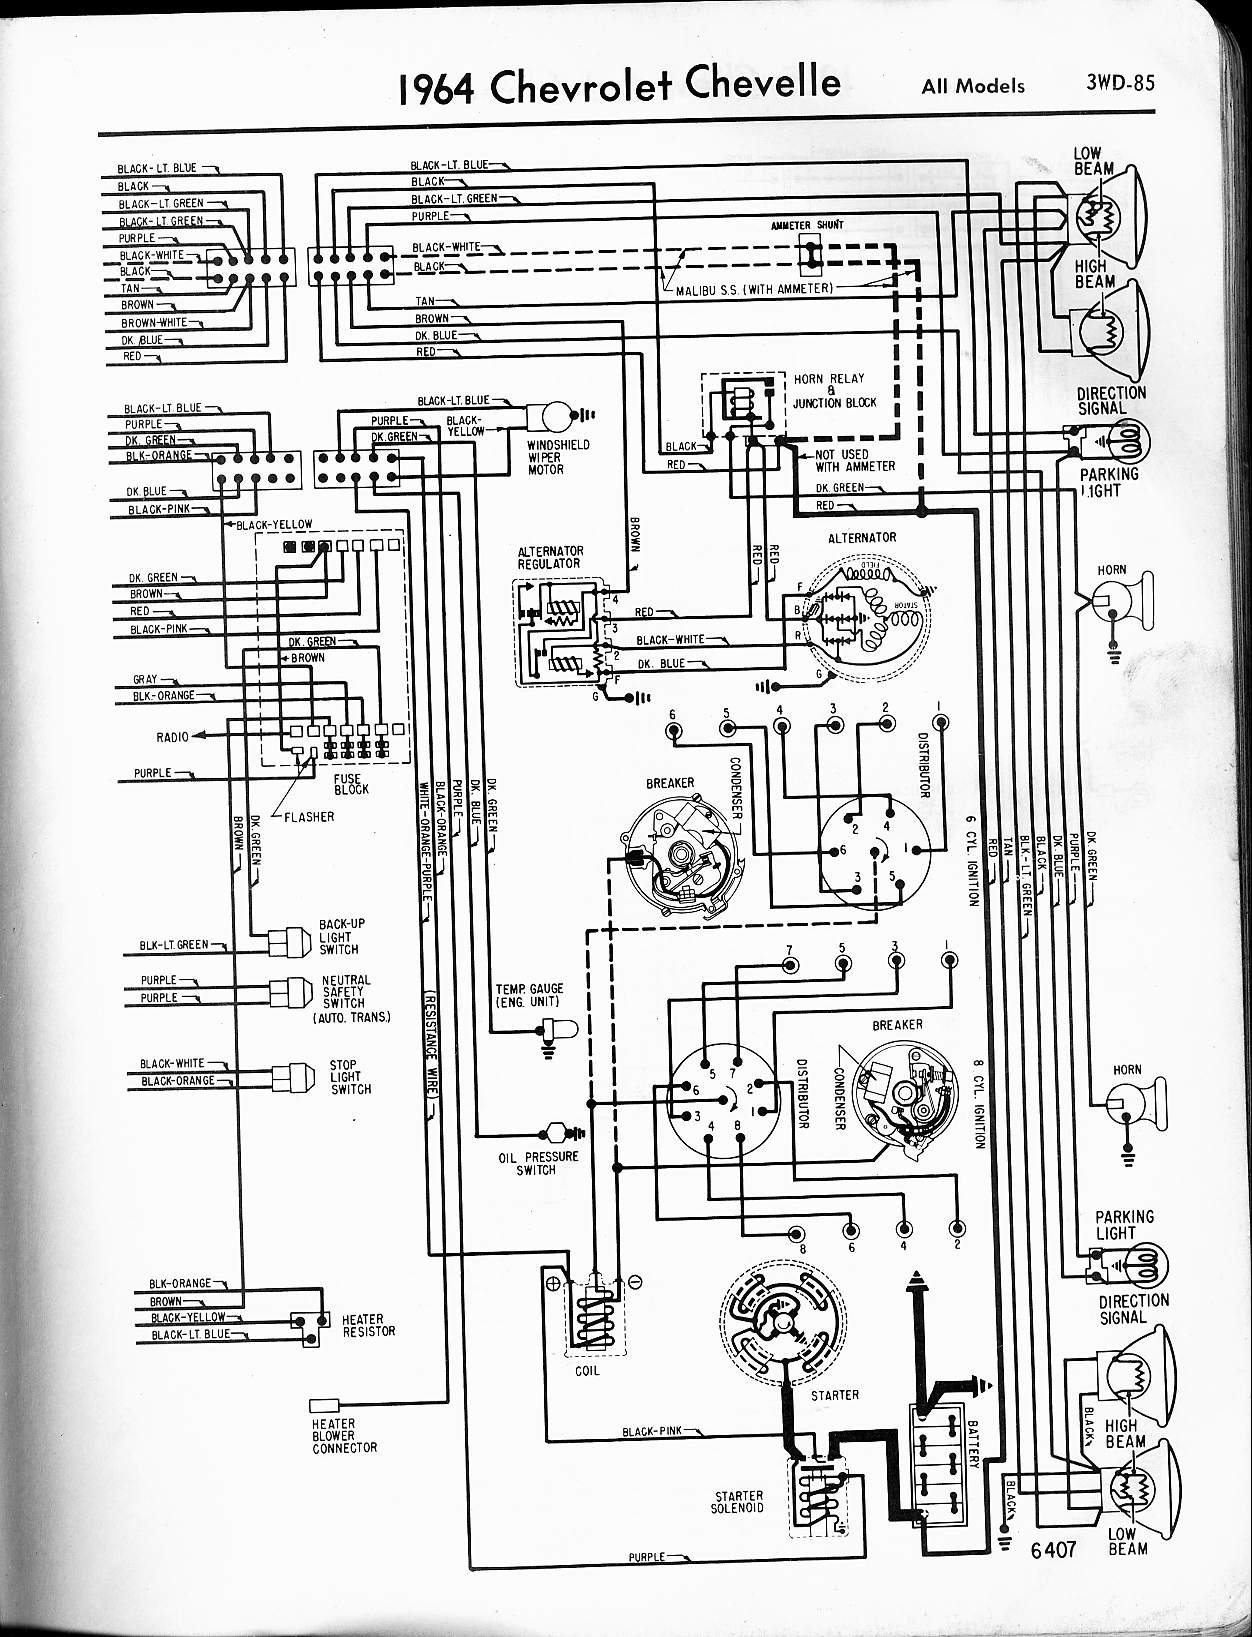 MWireChev64_3WD 085 1964 thunderbird wiring diagram 1964 thunderbird stereo wiring wiring harness 1964 mustang at bayanpartner.co